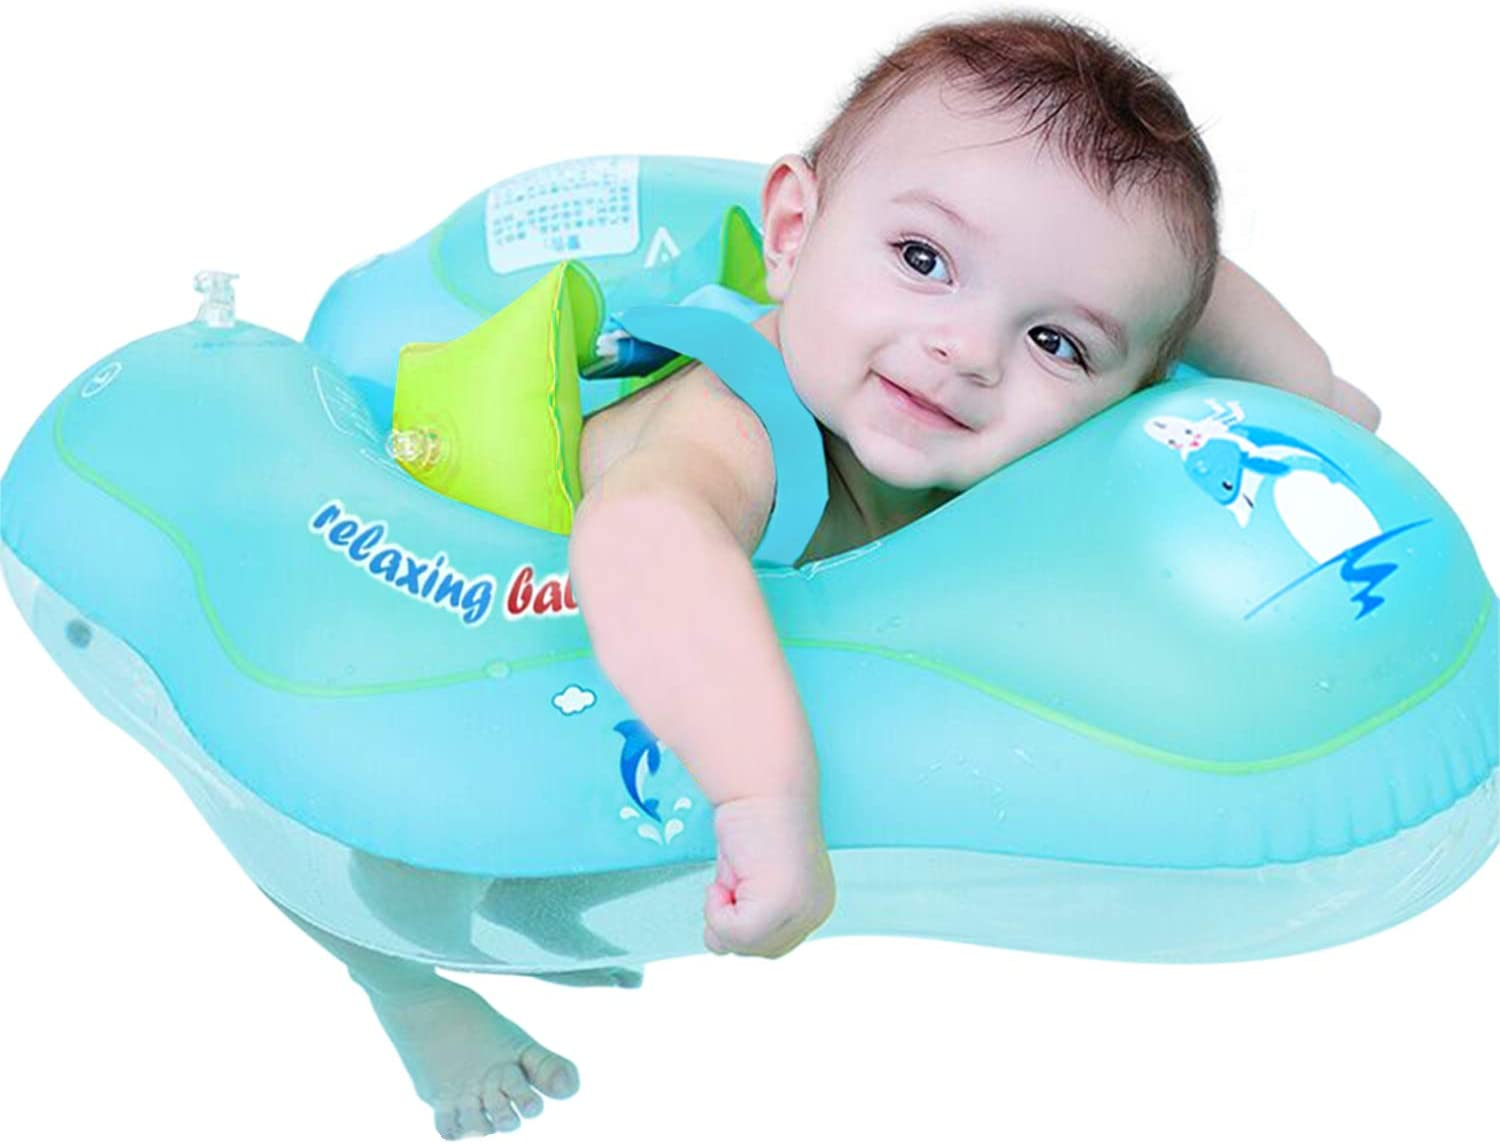 【Upgrade】Baby Swimming Float Ring - Baby Spring Floats Swim Trainer Newborn Baby Kid Toddler Age 3-10 Month (11 - 22lbs) Summer Outdoor Beach Water Bath Toy Swimming Pool Accessories 61F-xAFz0OL